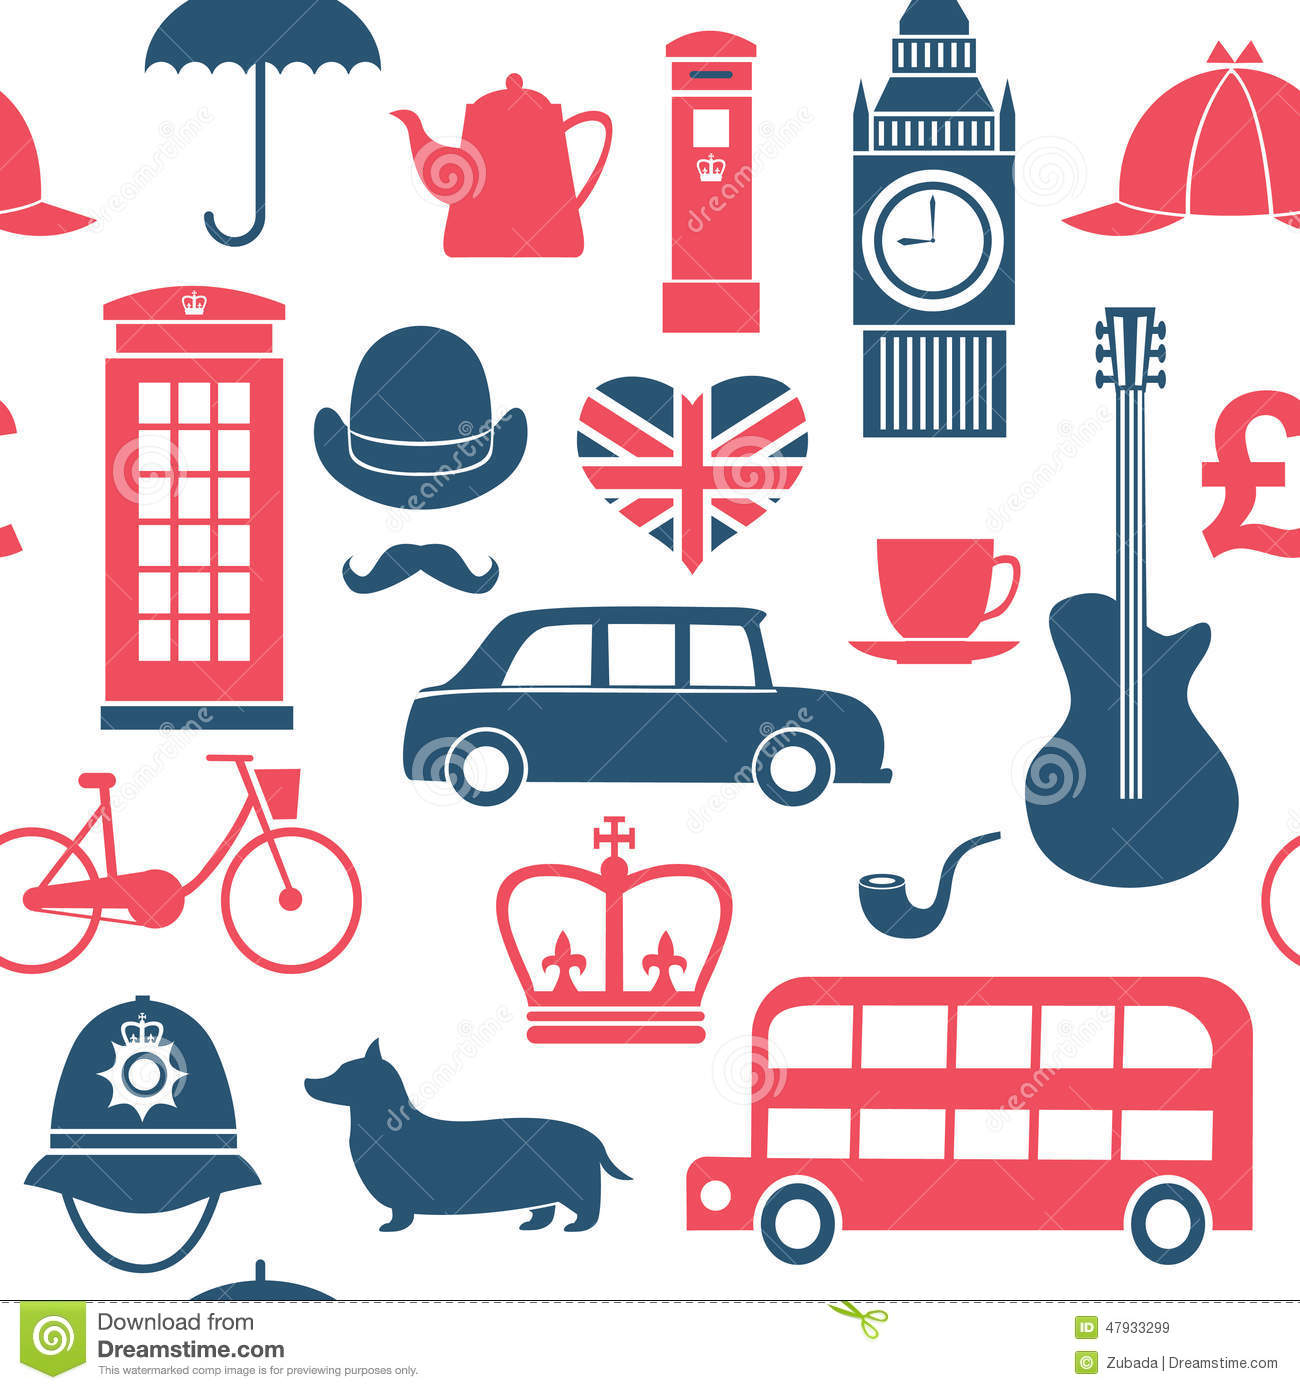 Free british clipart banner free download English clipart english symbol - 122 transparent clip arts, images ... banner free download